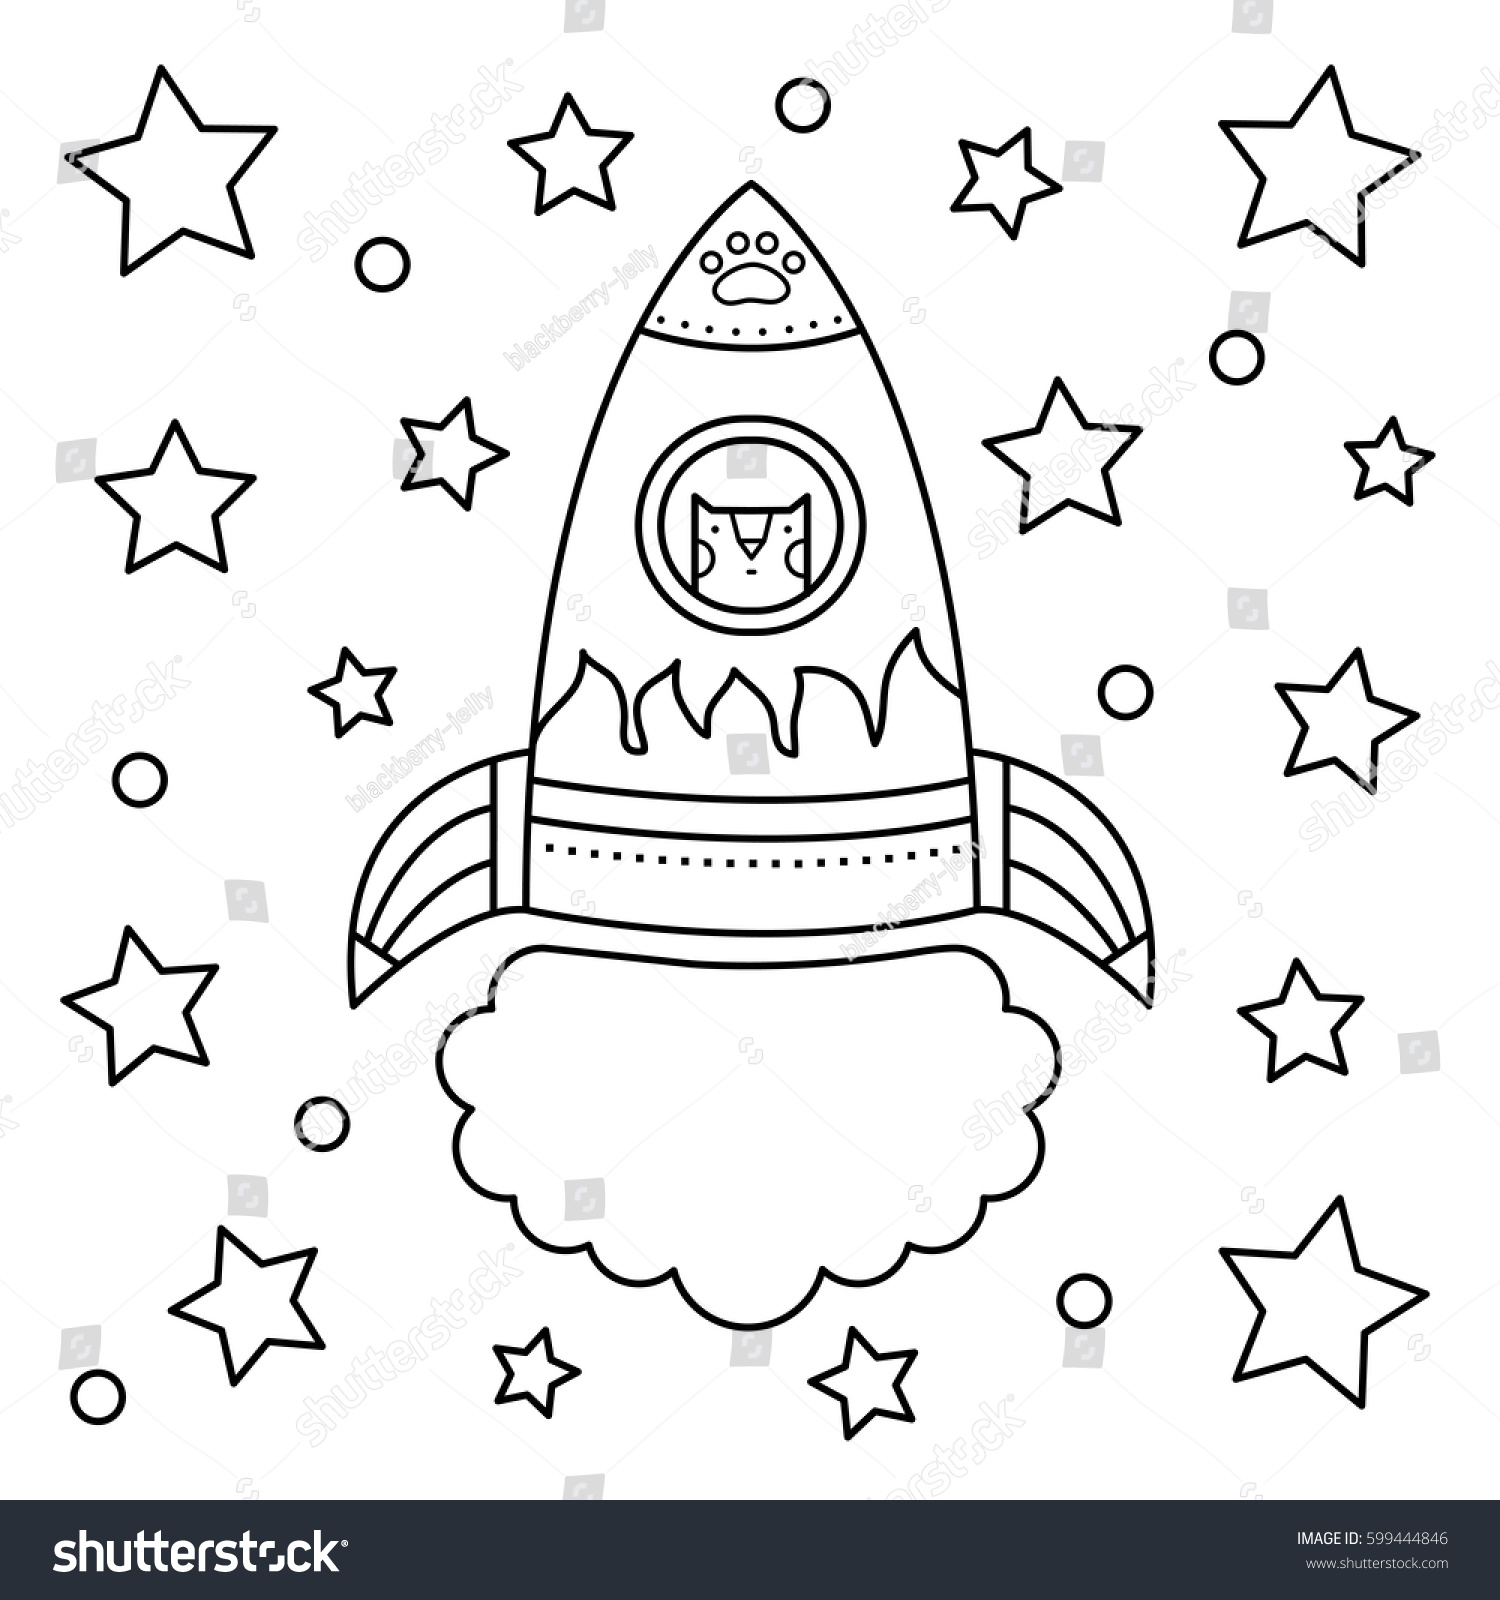 Vector Illustration Rocket Coloring Page Stock Vector (Royalty Free ...